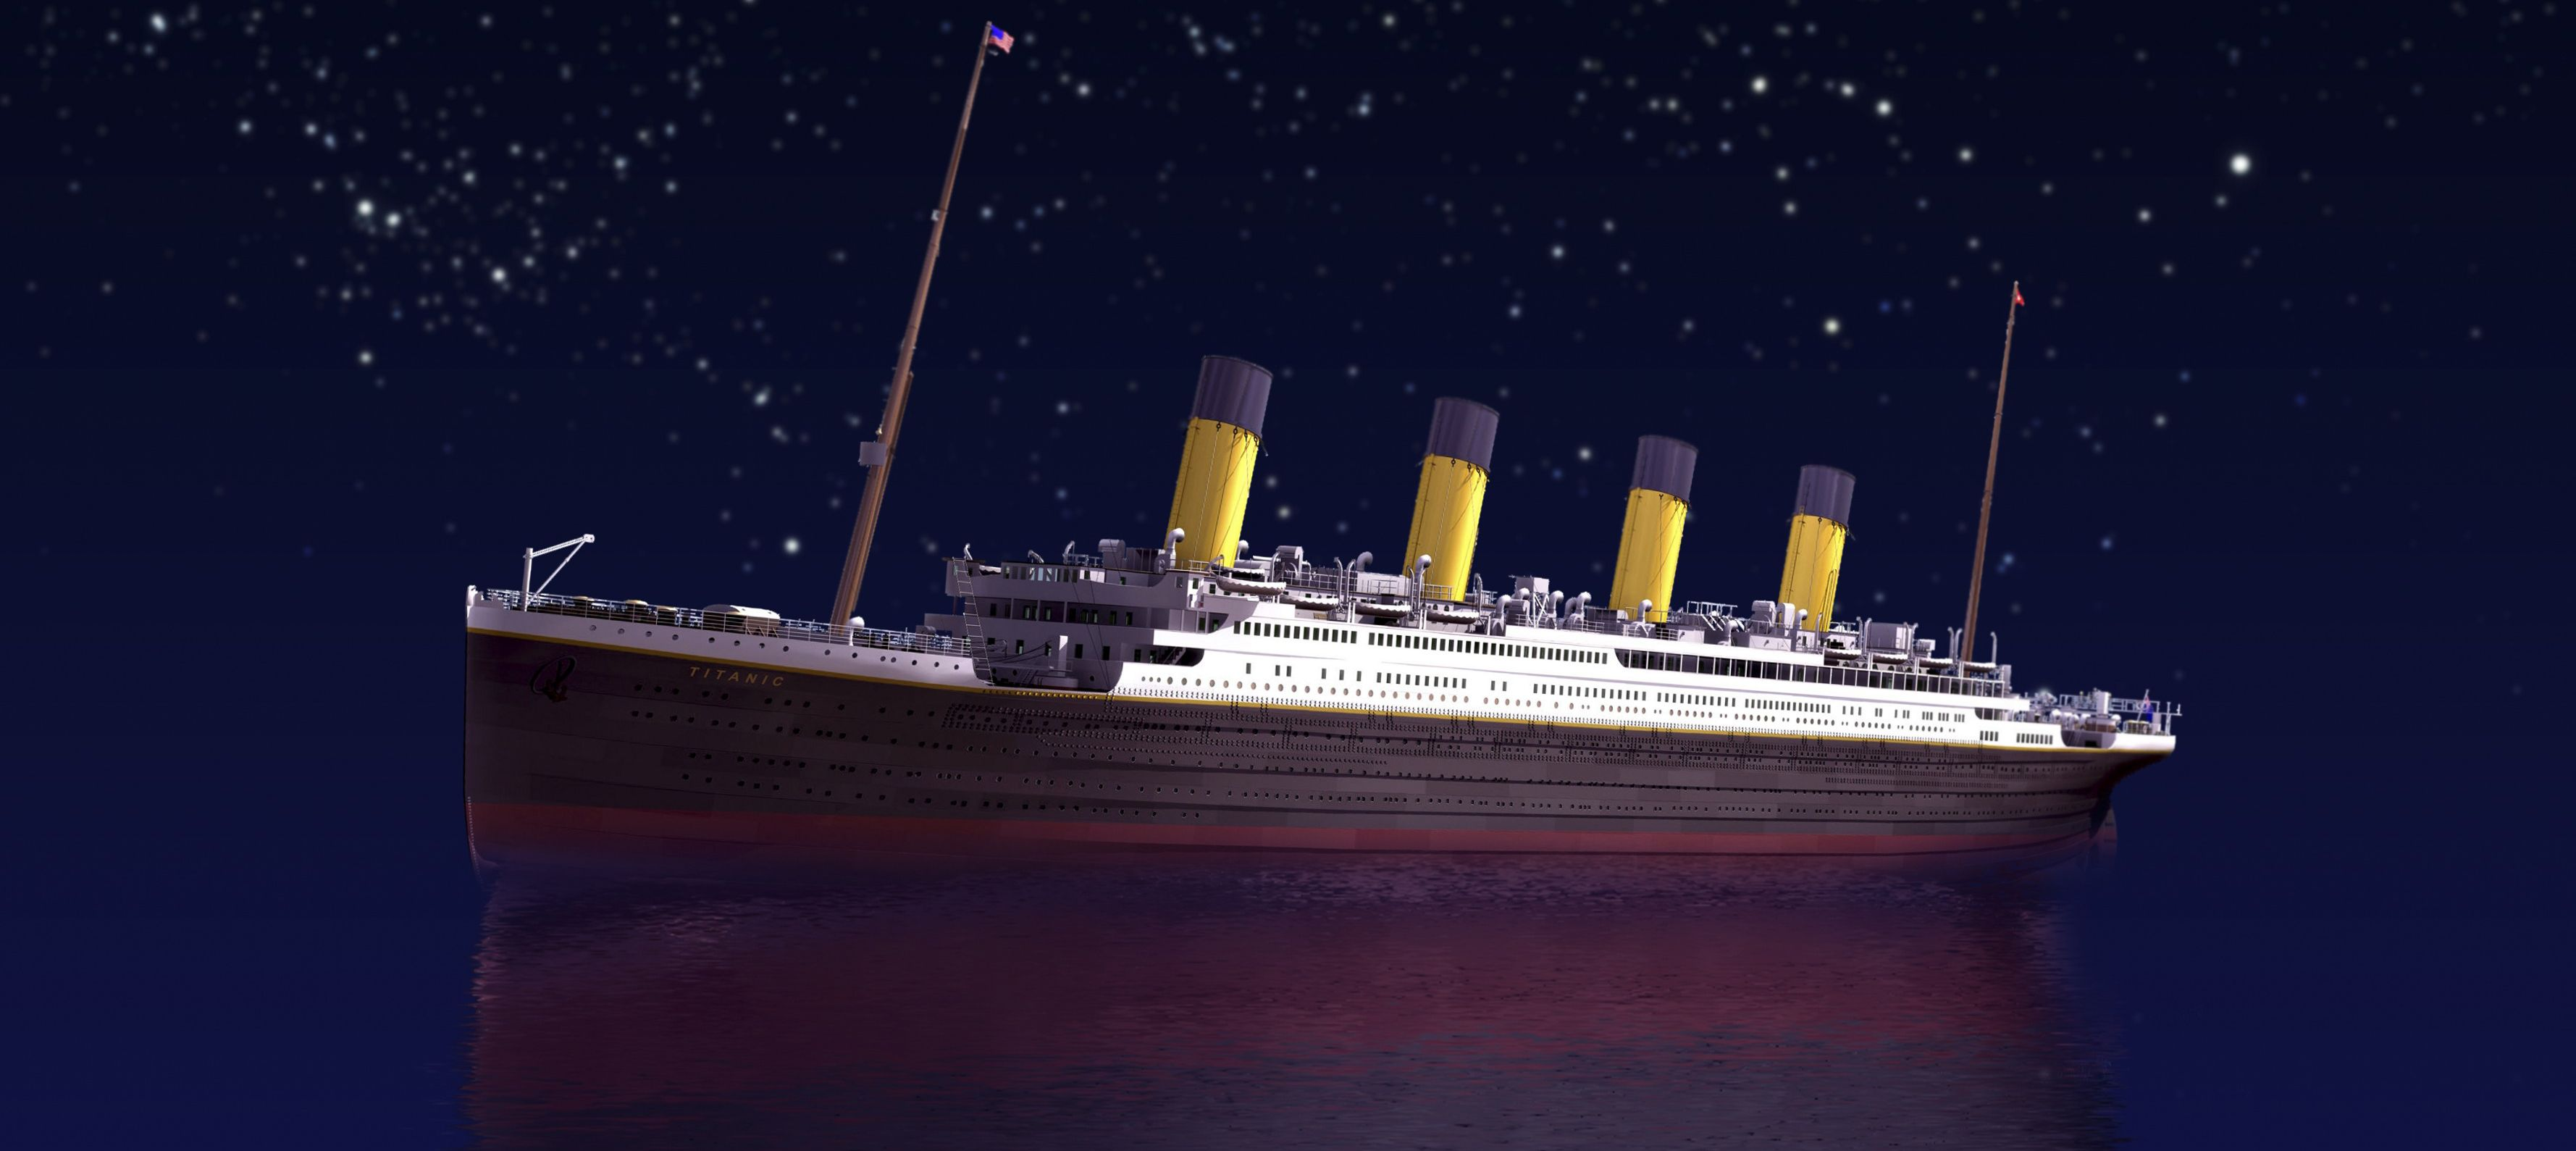 Titanic facts for kids | History | National Geographic Kids